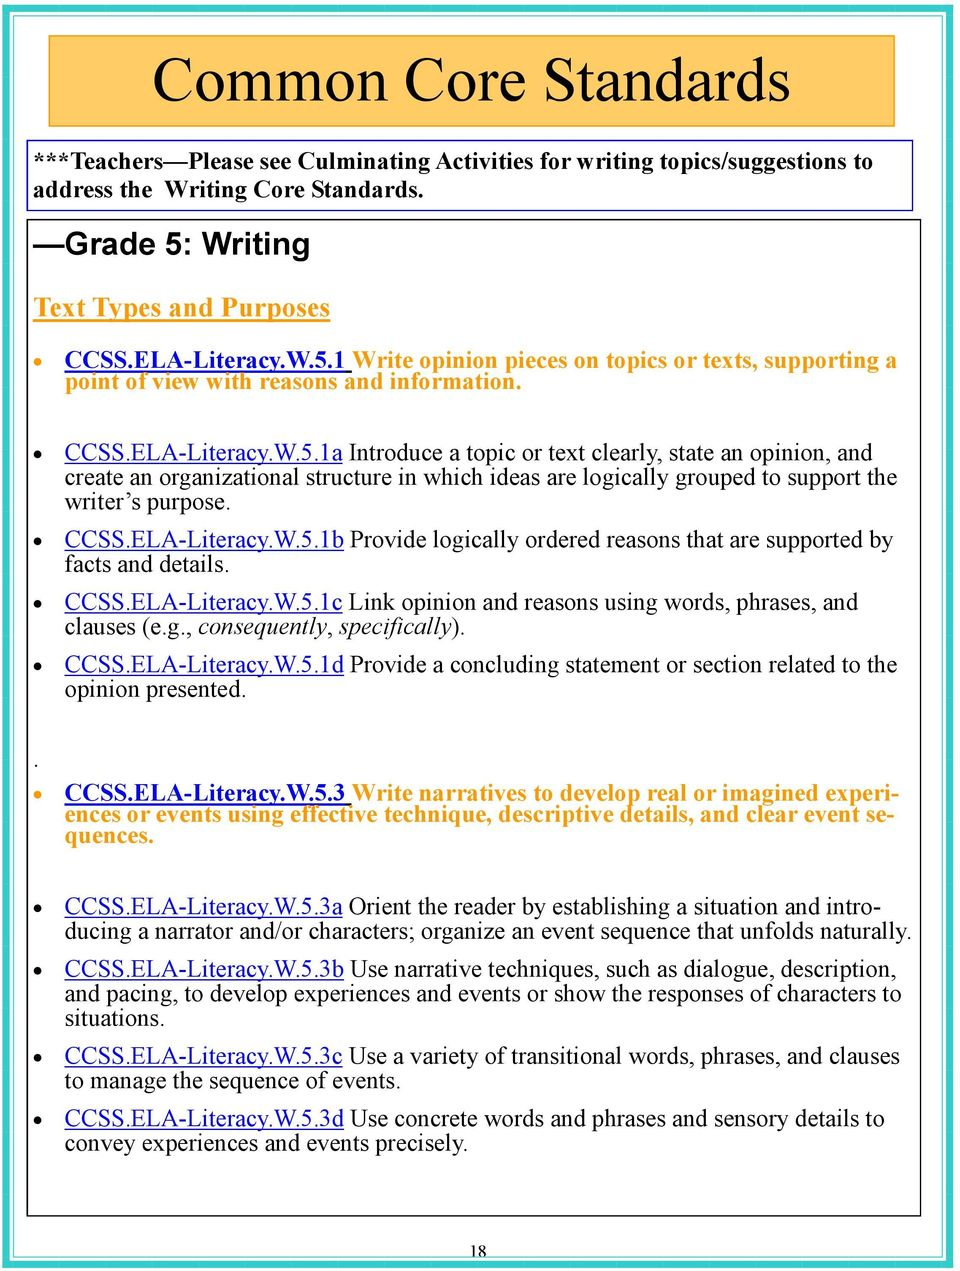 1 Write opinion pieces on topics or texts, supporting a point of view with reasons and information. CCSS.ELA-Literacy.W.5.